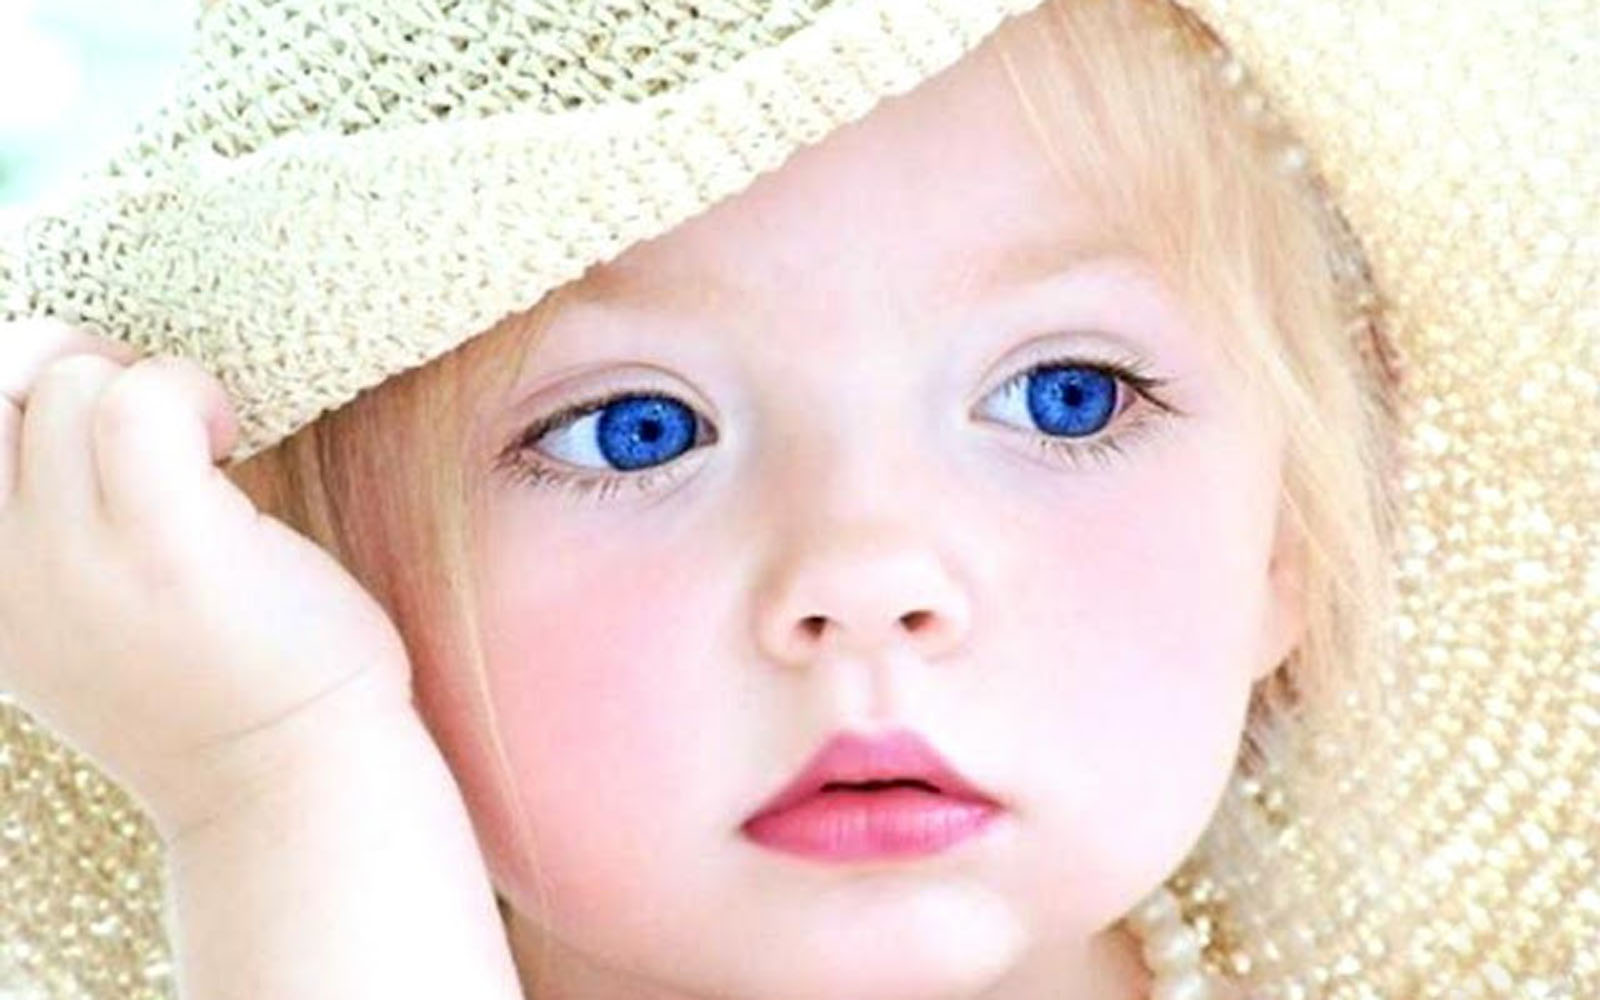 Love cute child Wallpaper : wallpapers: cute Babies Hd Wallpapers